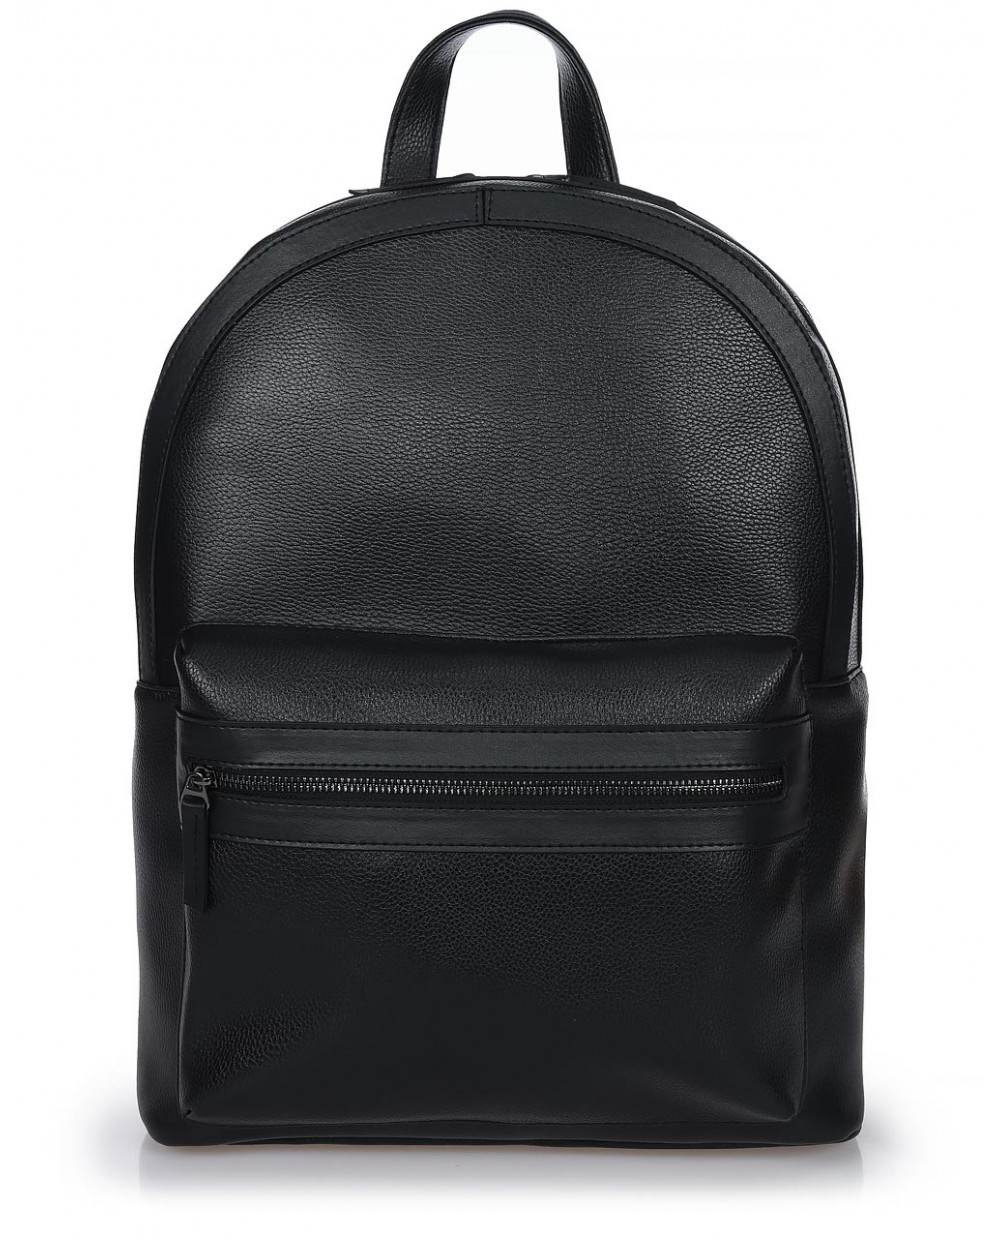 BACKPACK 9004